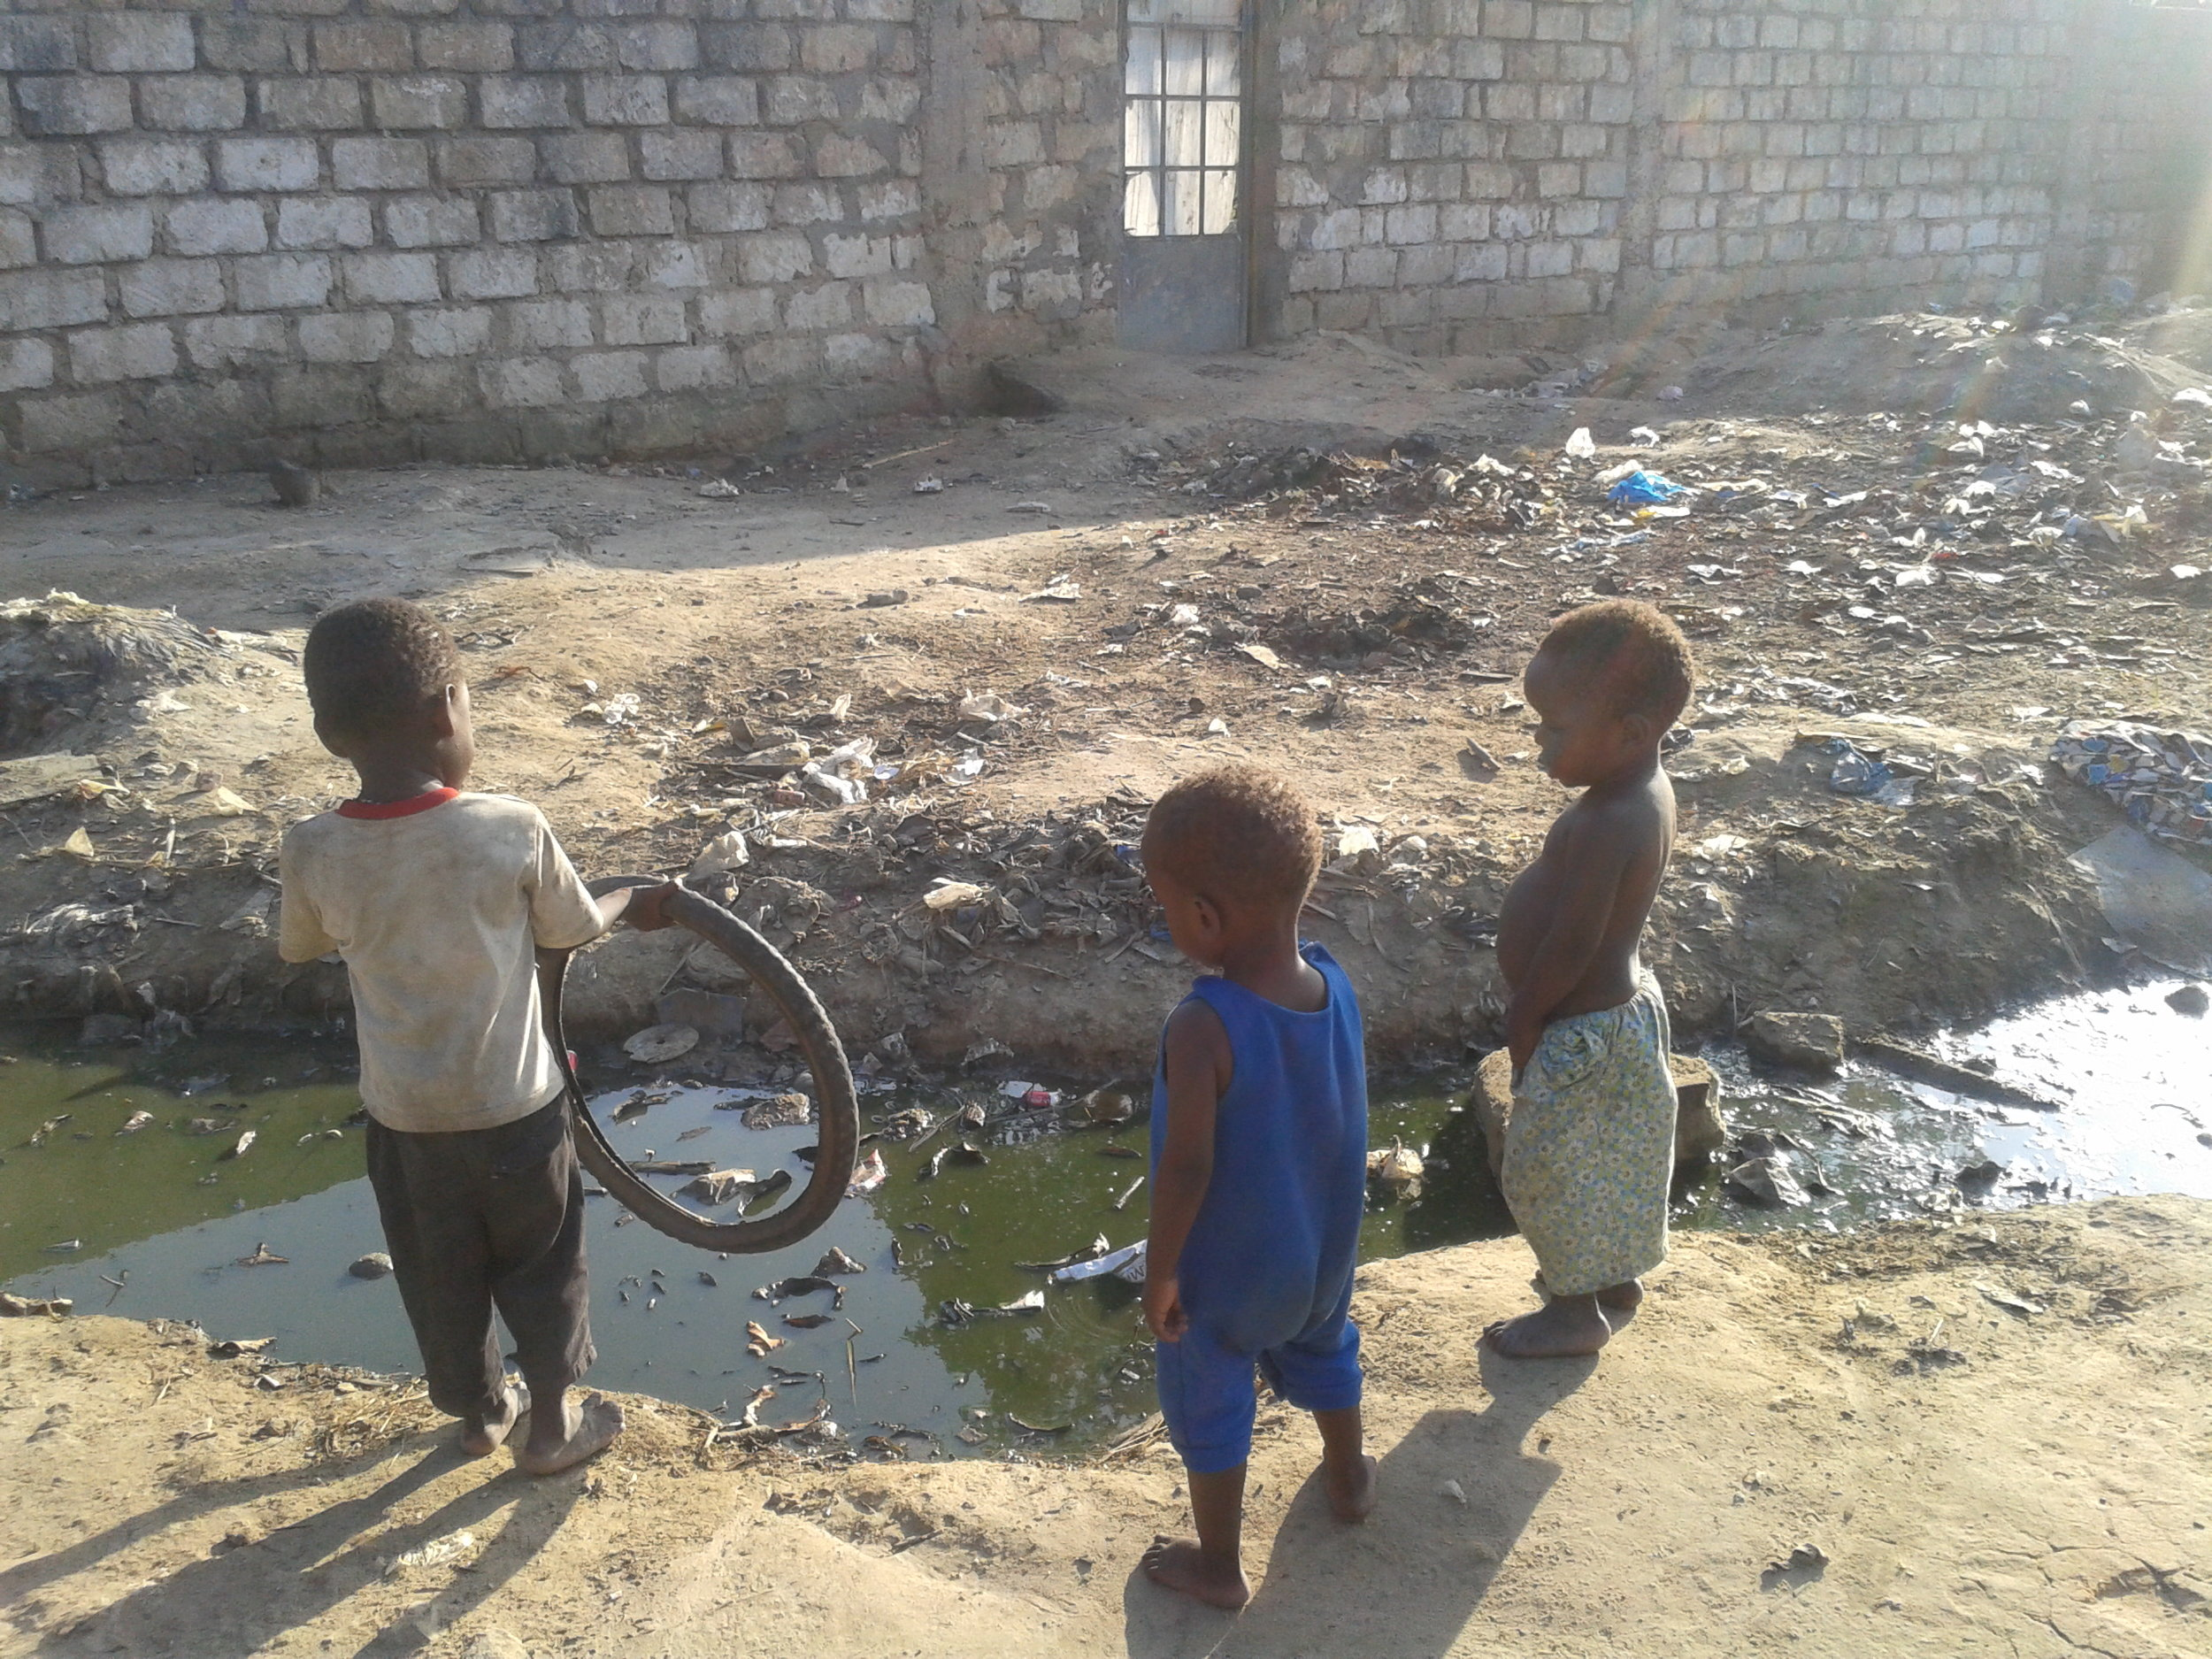 Children playing near an open raw sewer